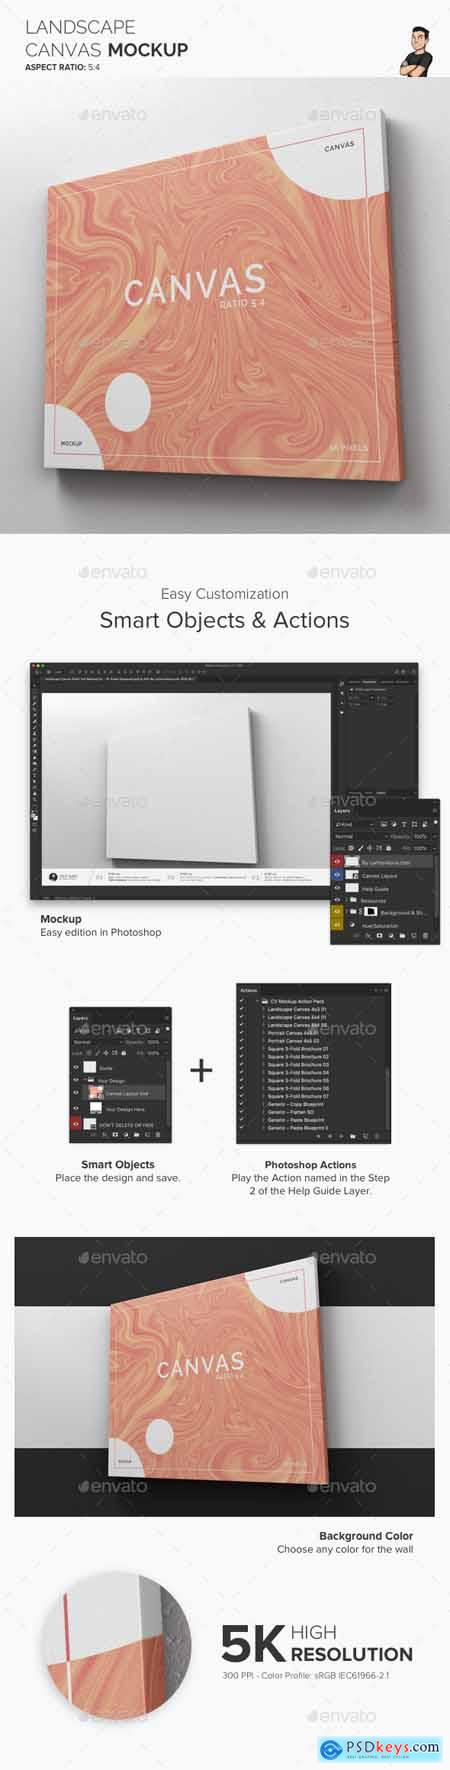 Landscape Canvas Ratio 5x4 Mockup 02